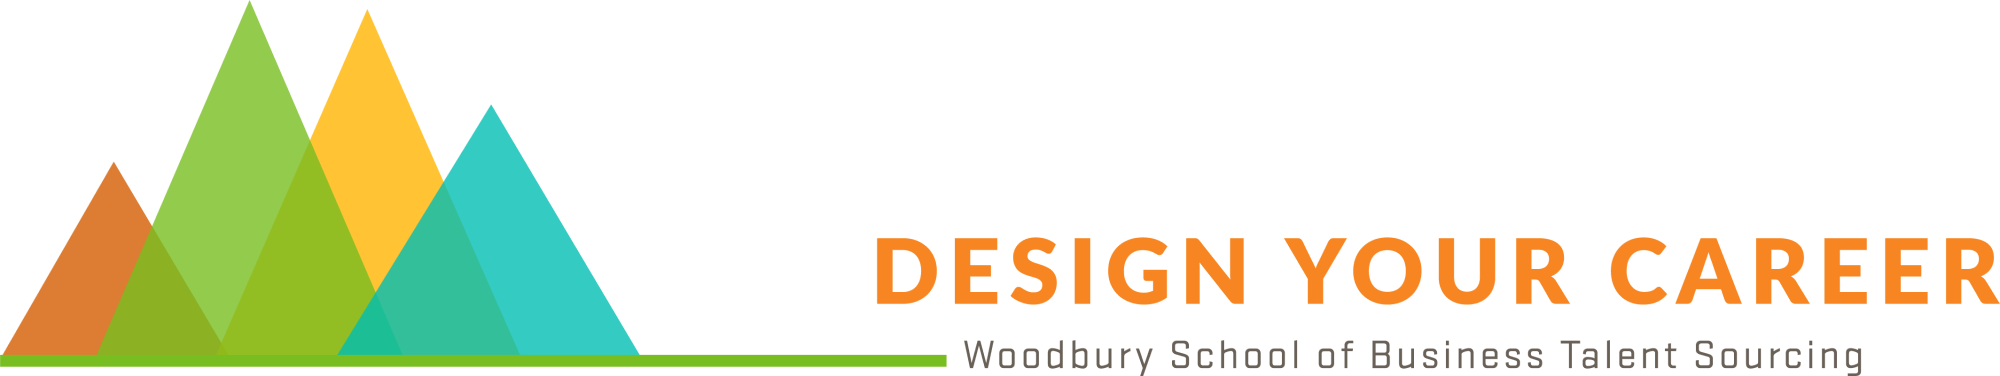 Talent sourcing logo that reads Design Your Career: Woodbury School of Business Talend Sourcing